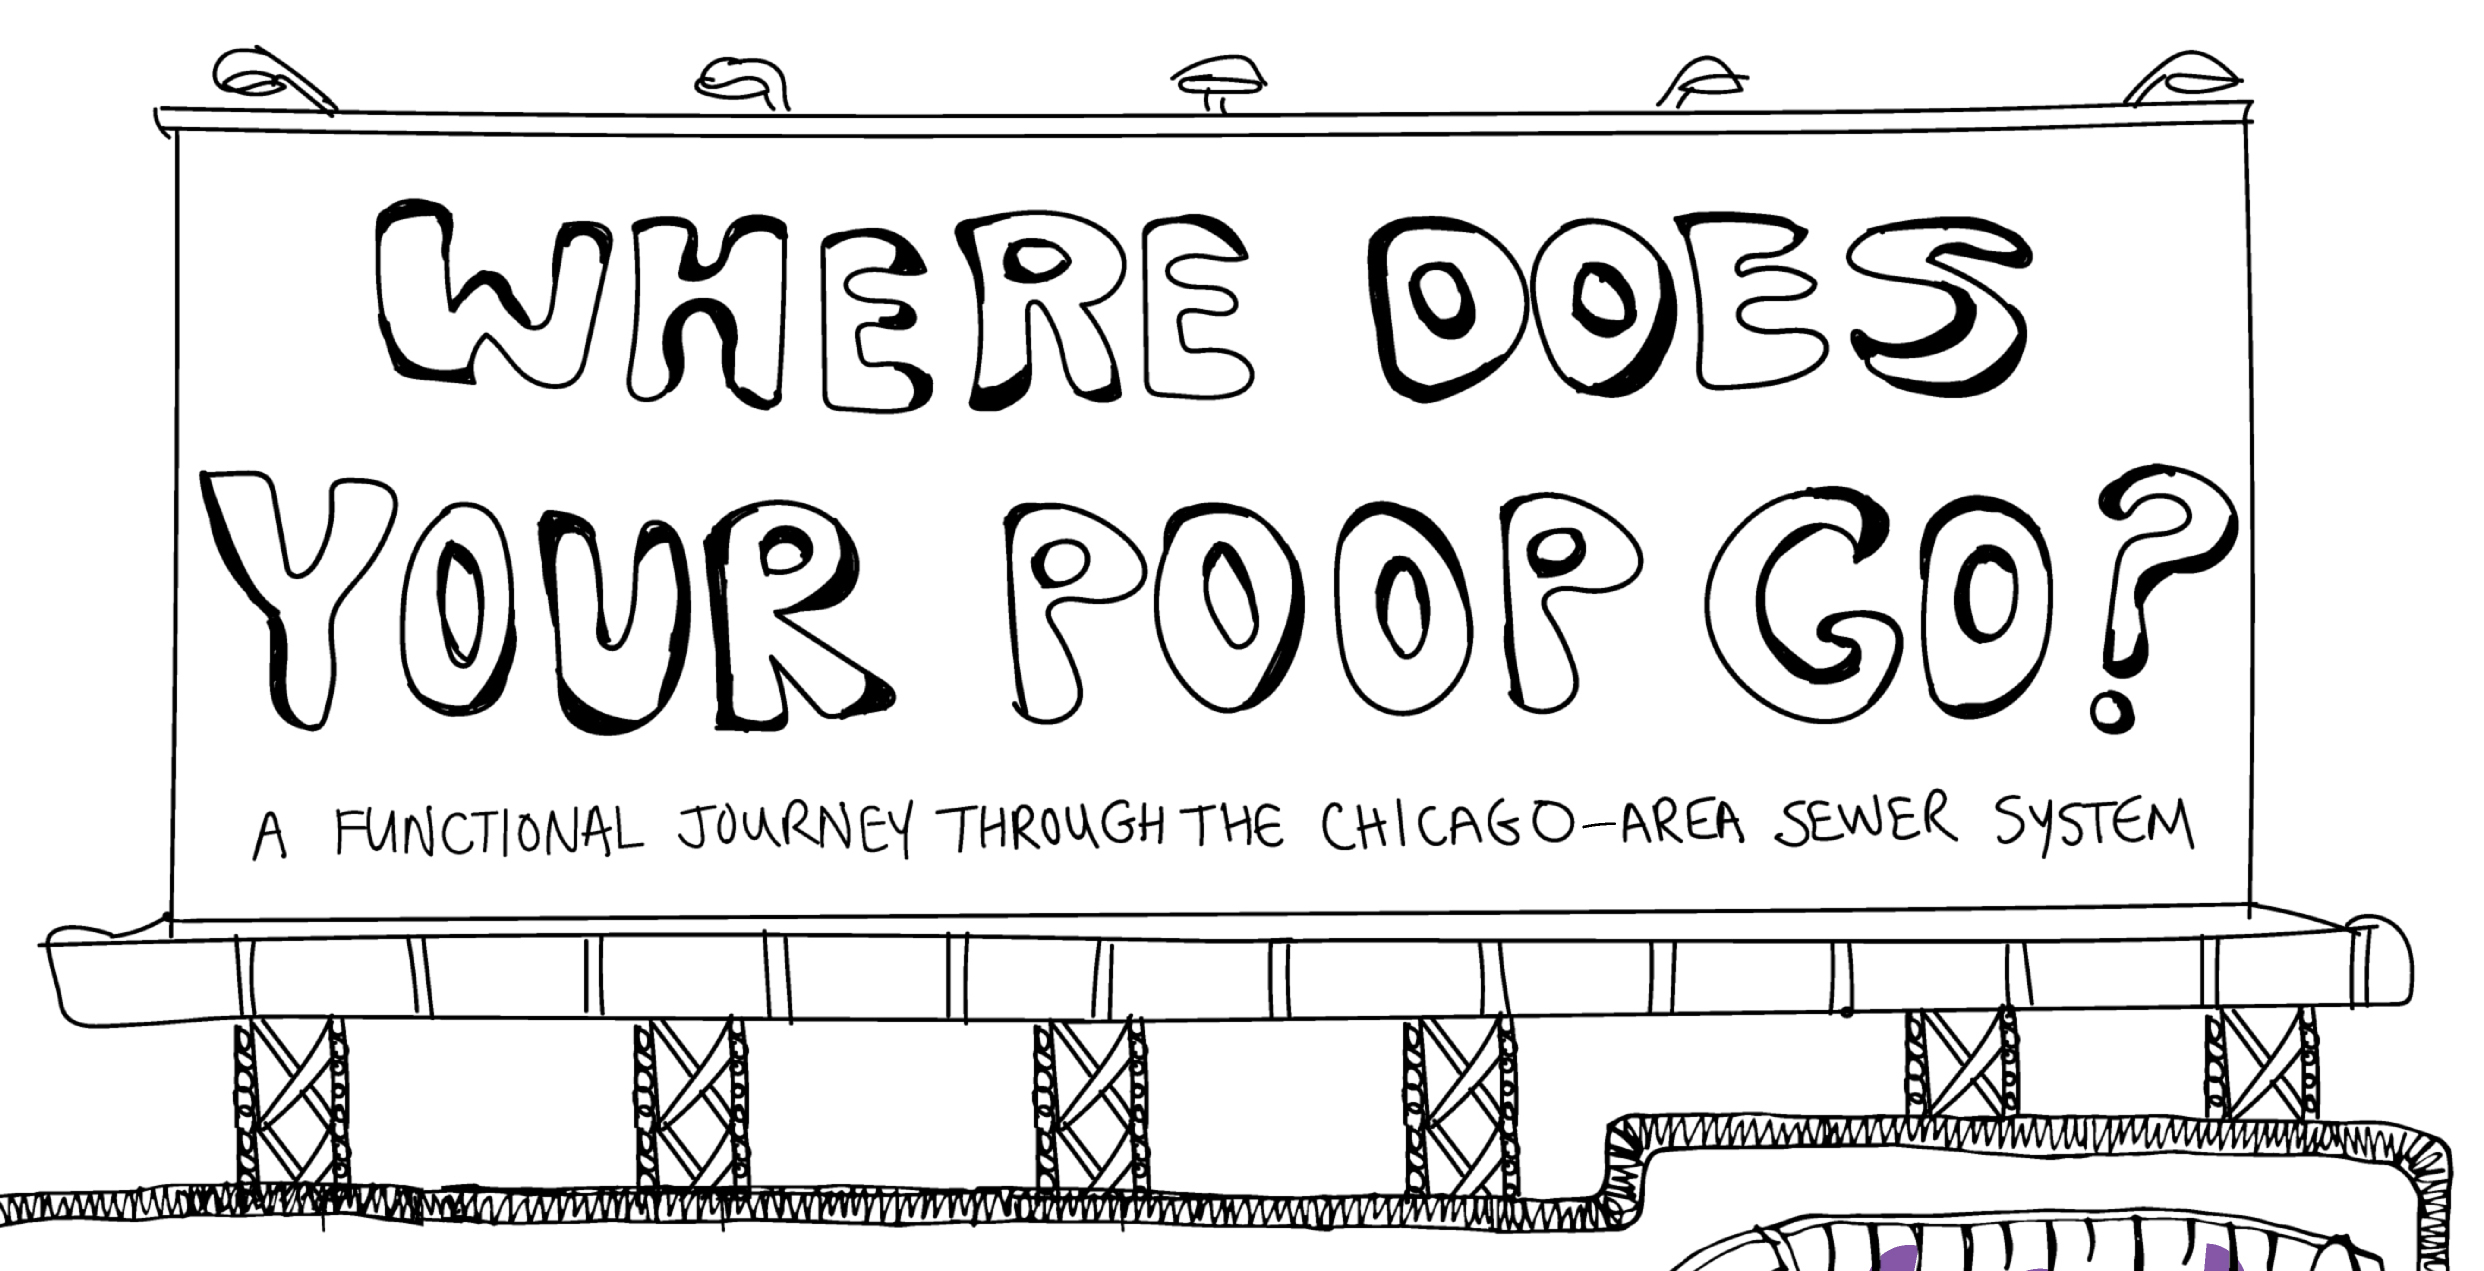 StoryMapJS: Where does your poop go?